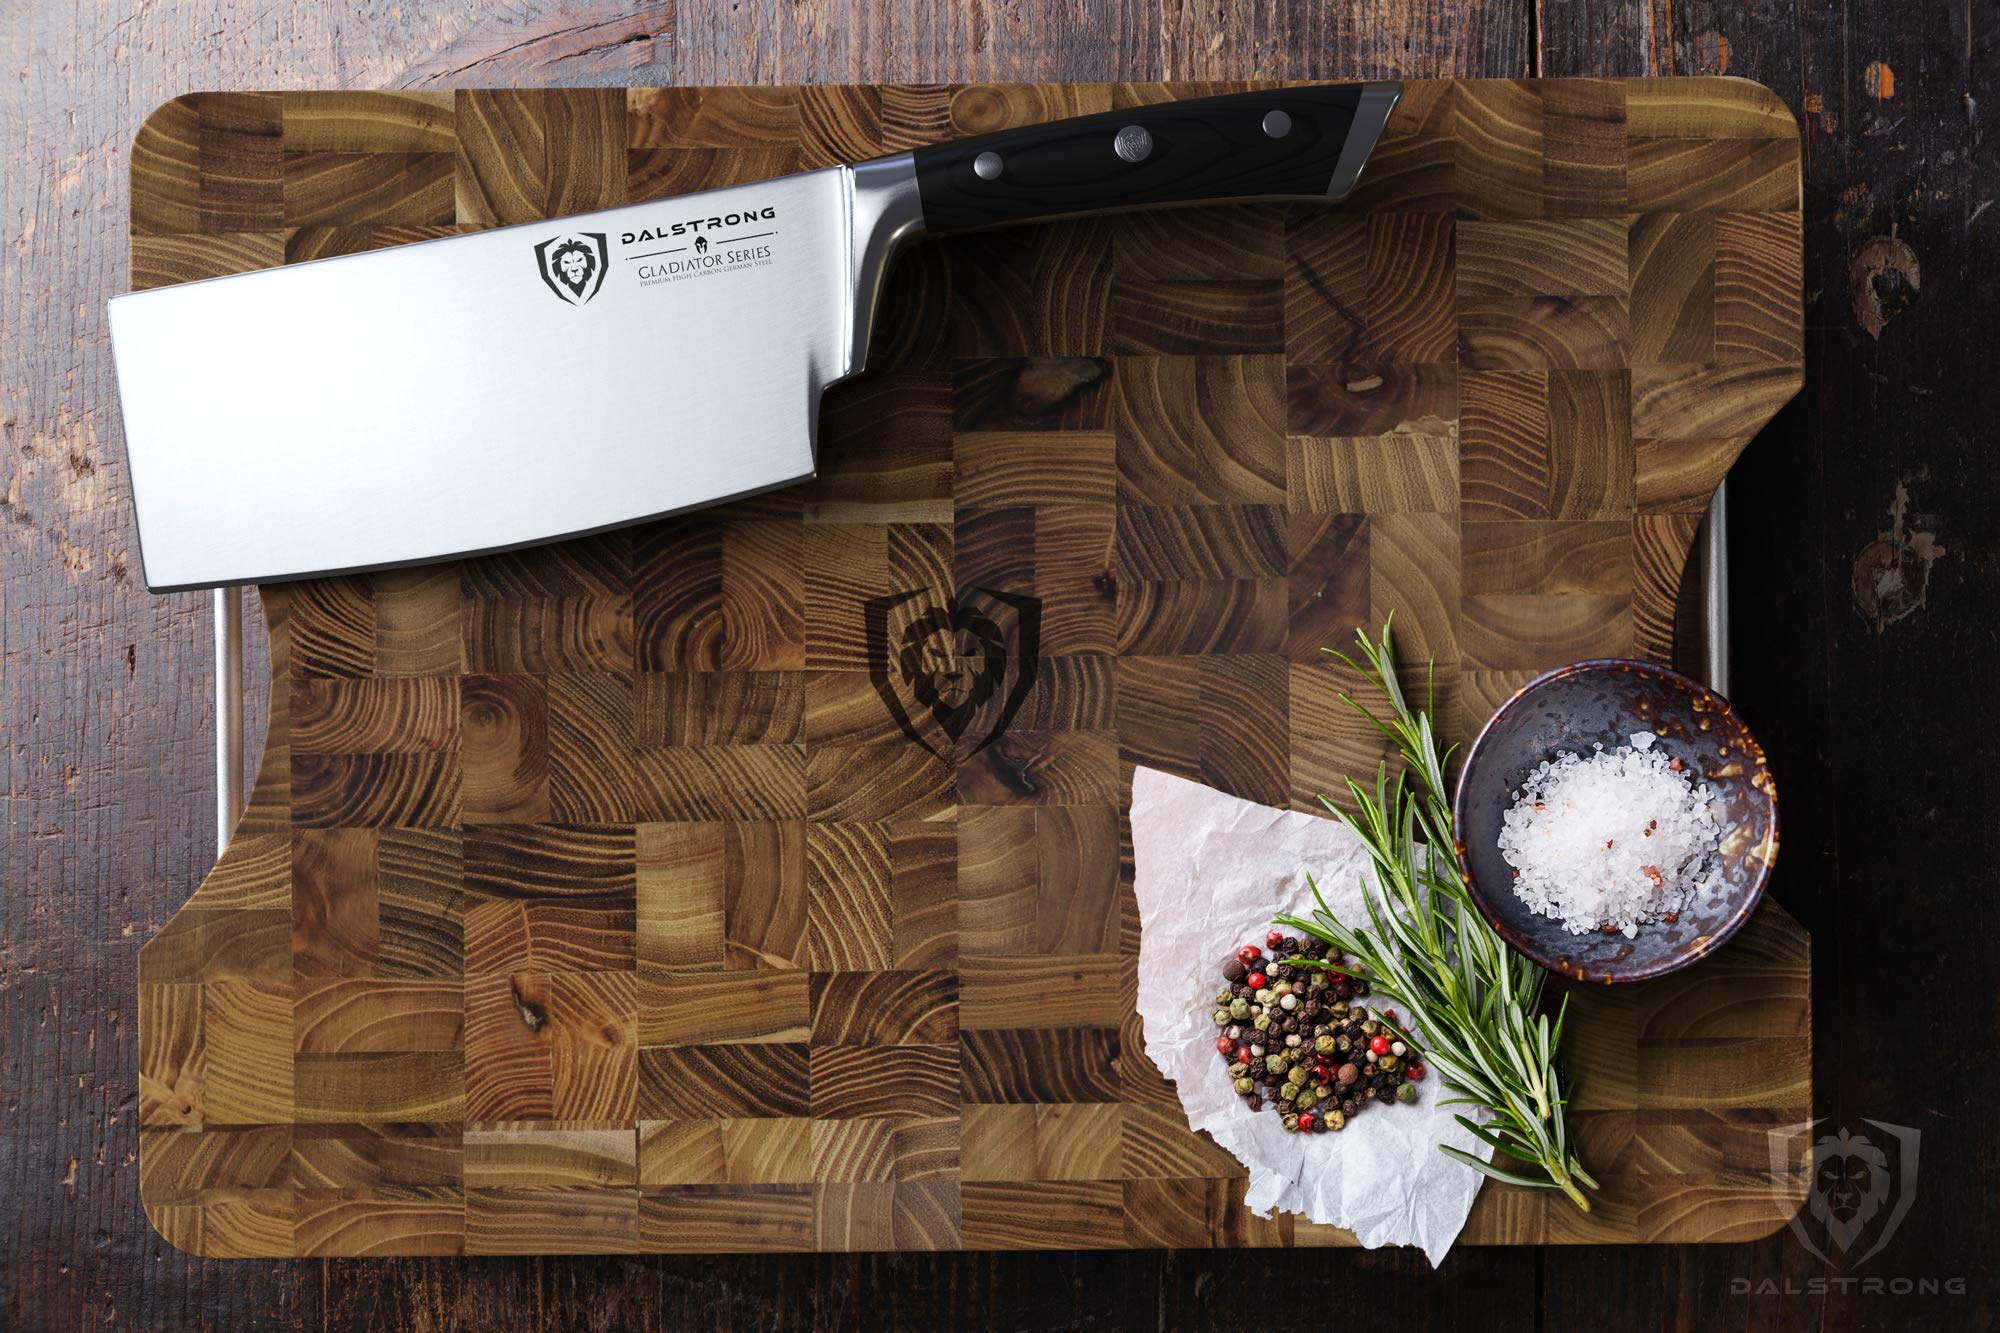 DALSTRONG Lionswood End-Grain Teak Cutting Board - Large - w/Steel Carrying Handles by Dalstrong (Image #4)